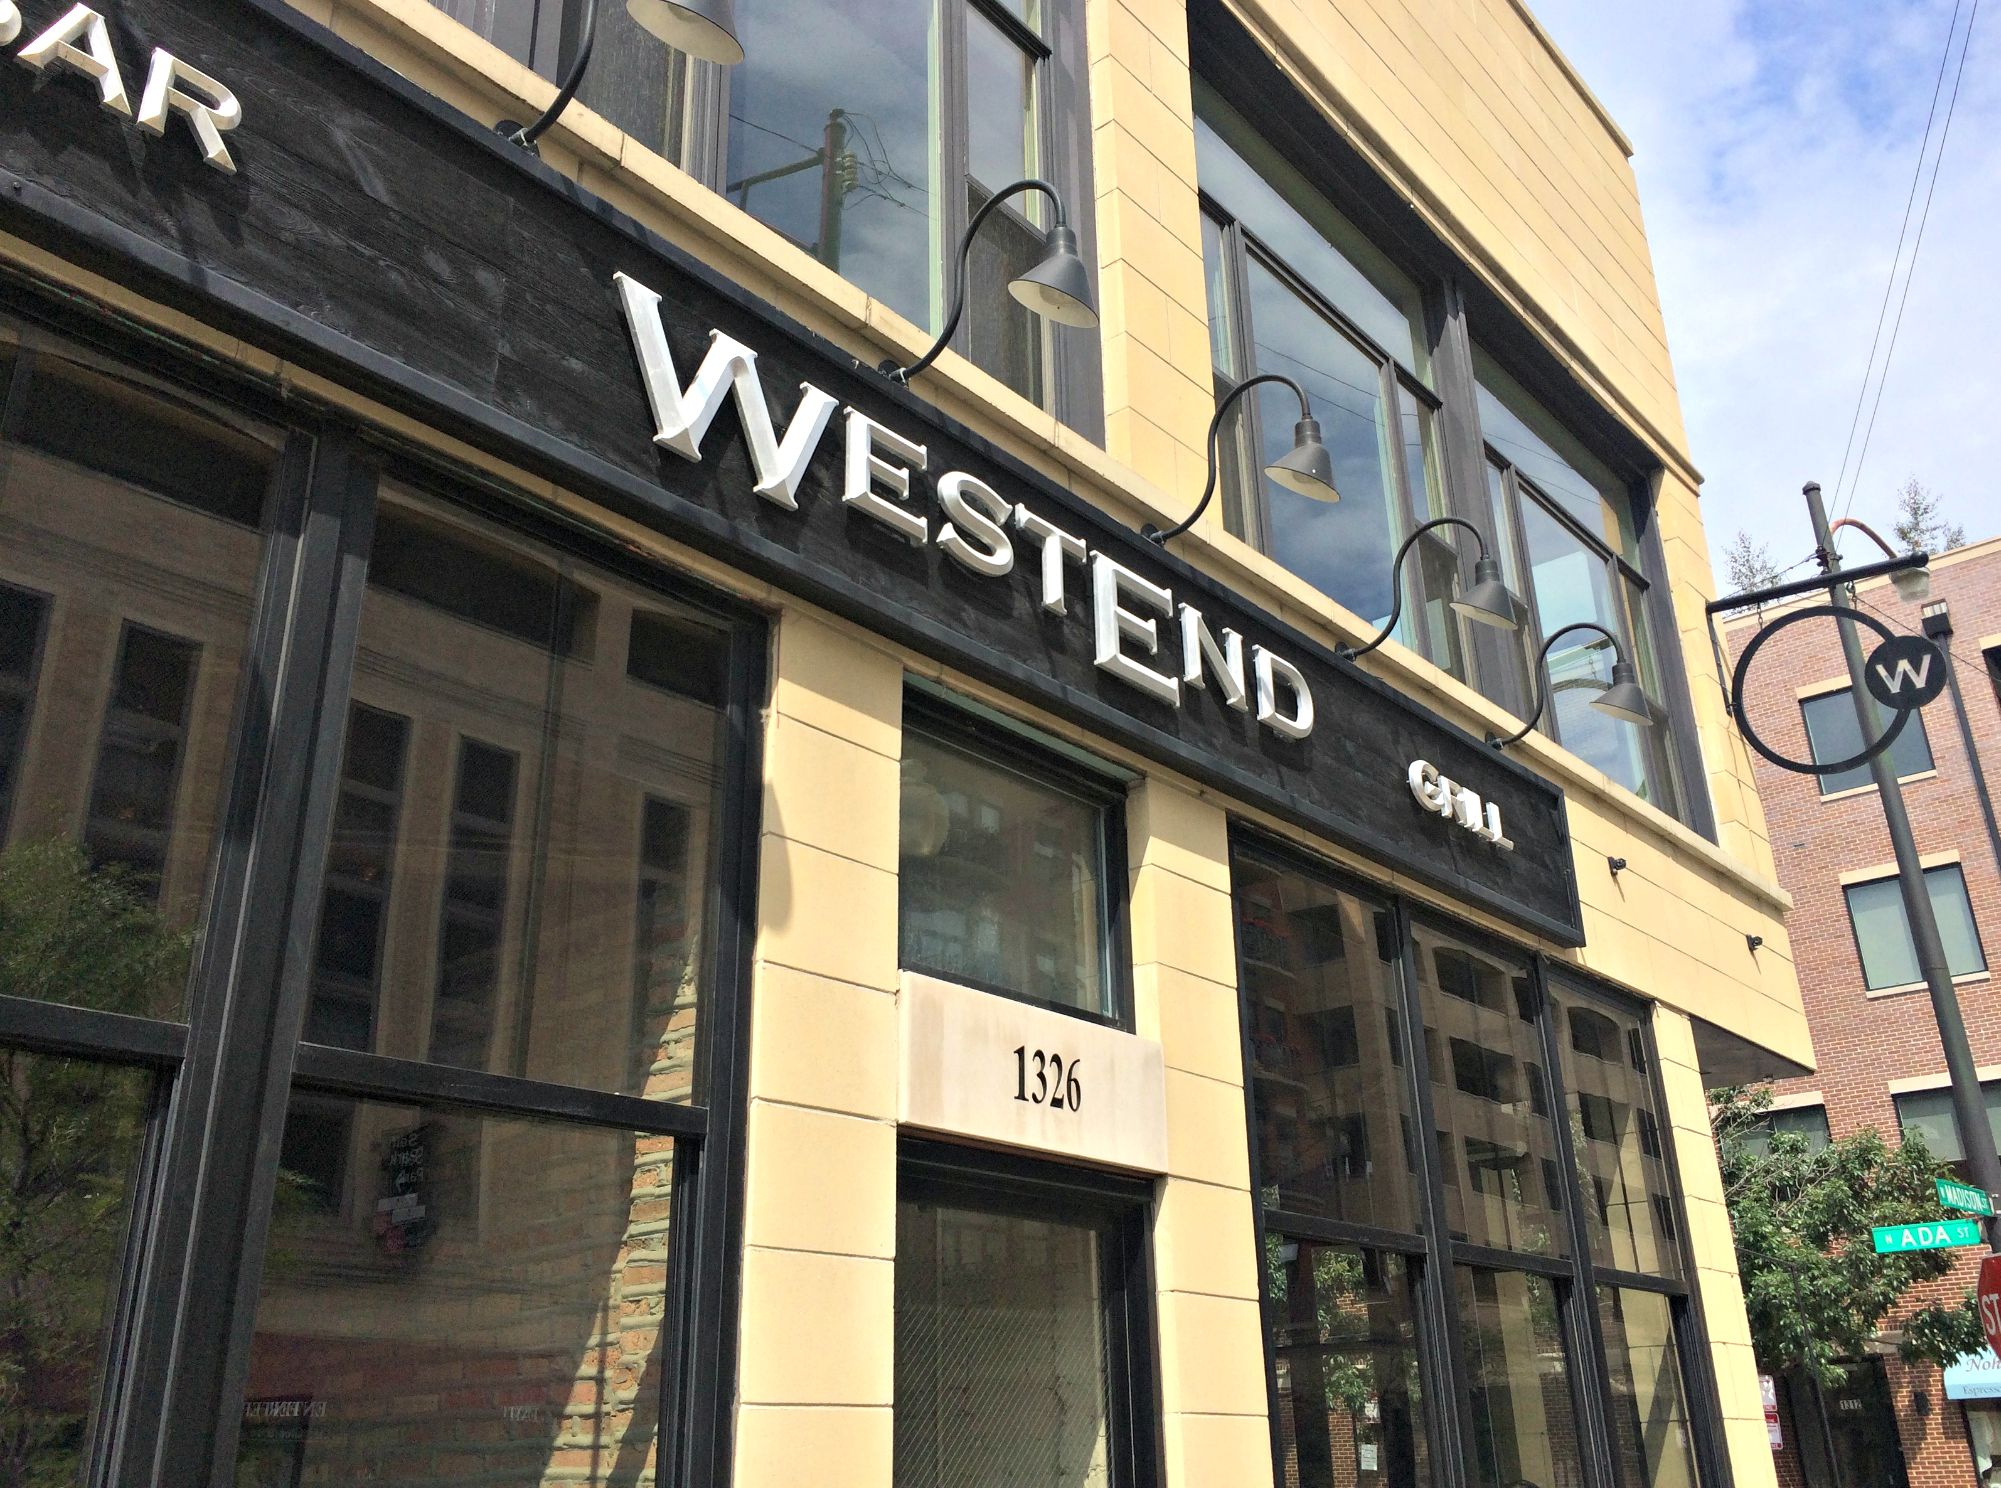 west end grill chicago